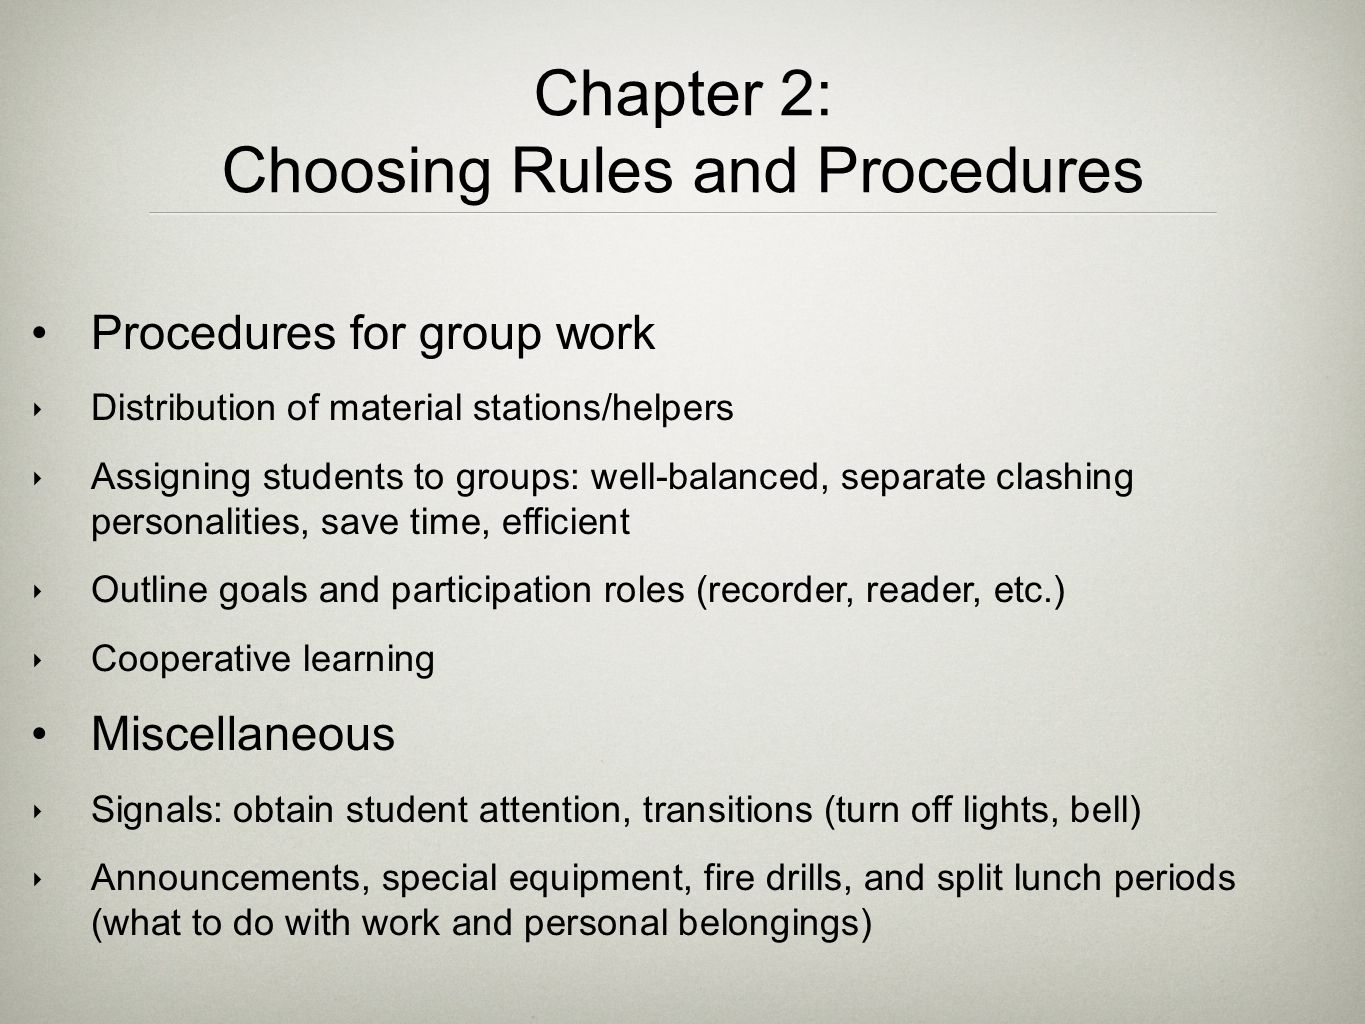 Procedures for group work ‣ Distribution of material stations/helpers ‣ Assigning students to groups: well-balanced, separate clashing personalities,